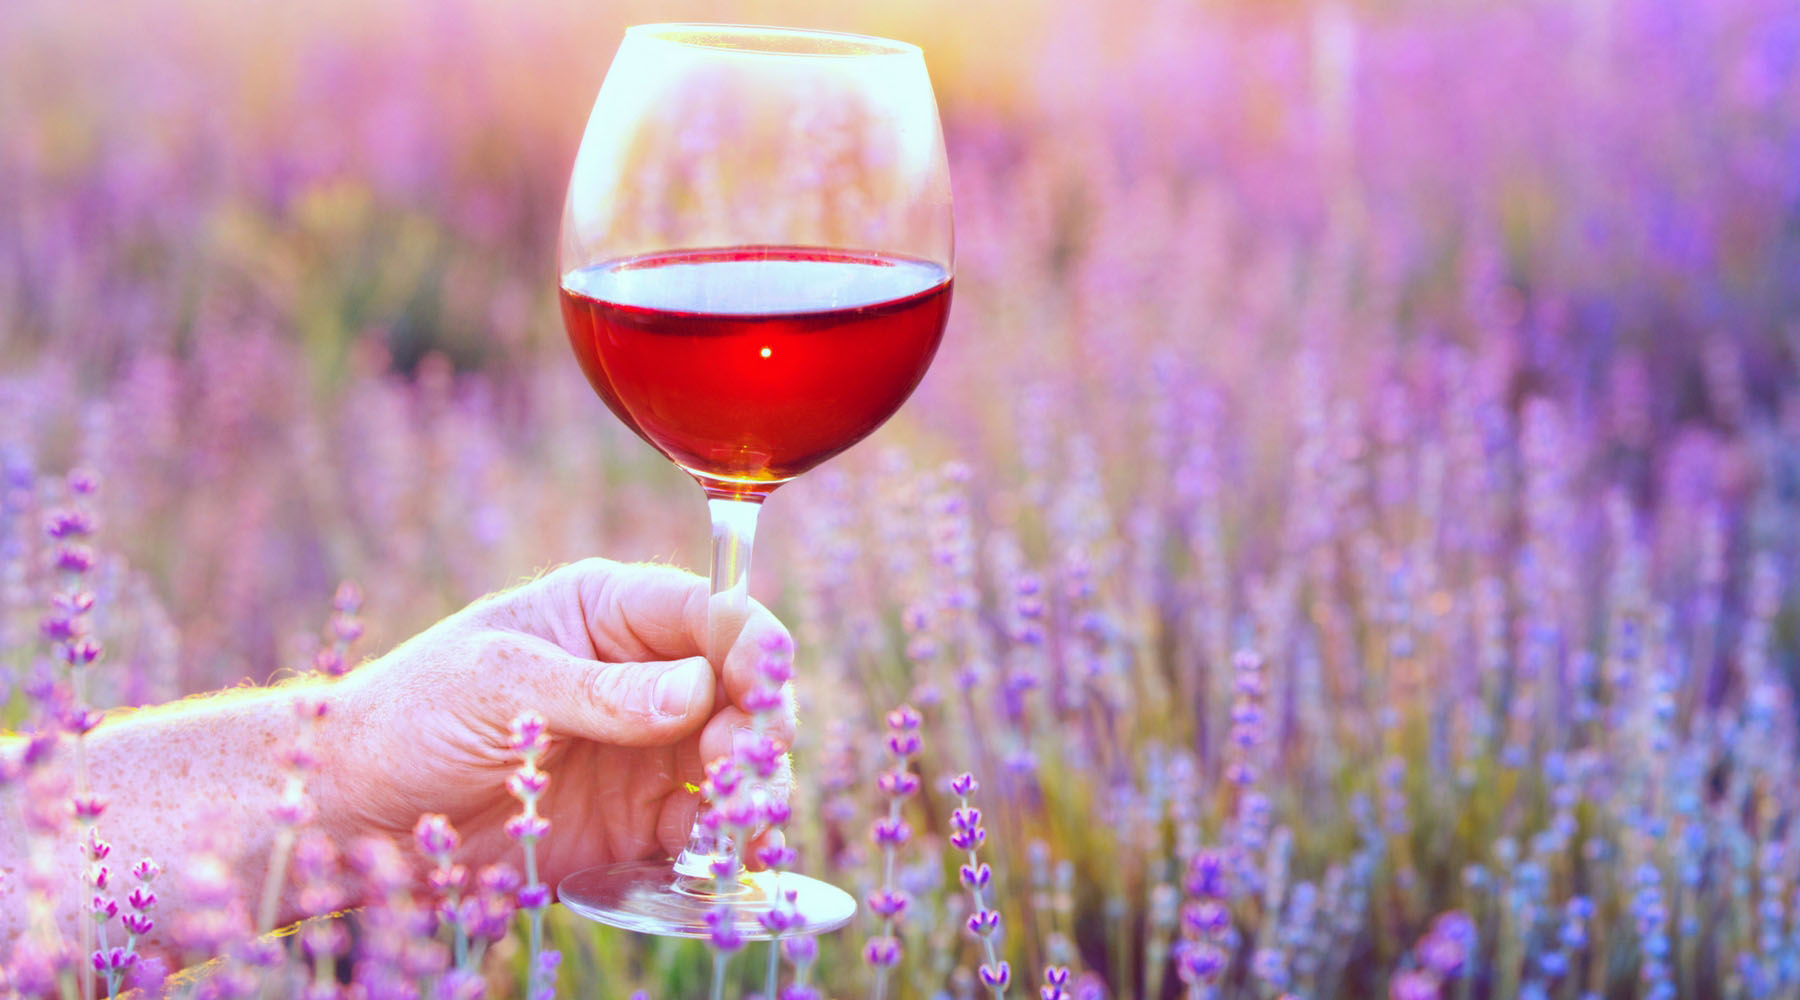 The Best Travel Destinations For Wine Lovers